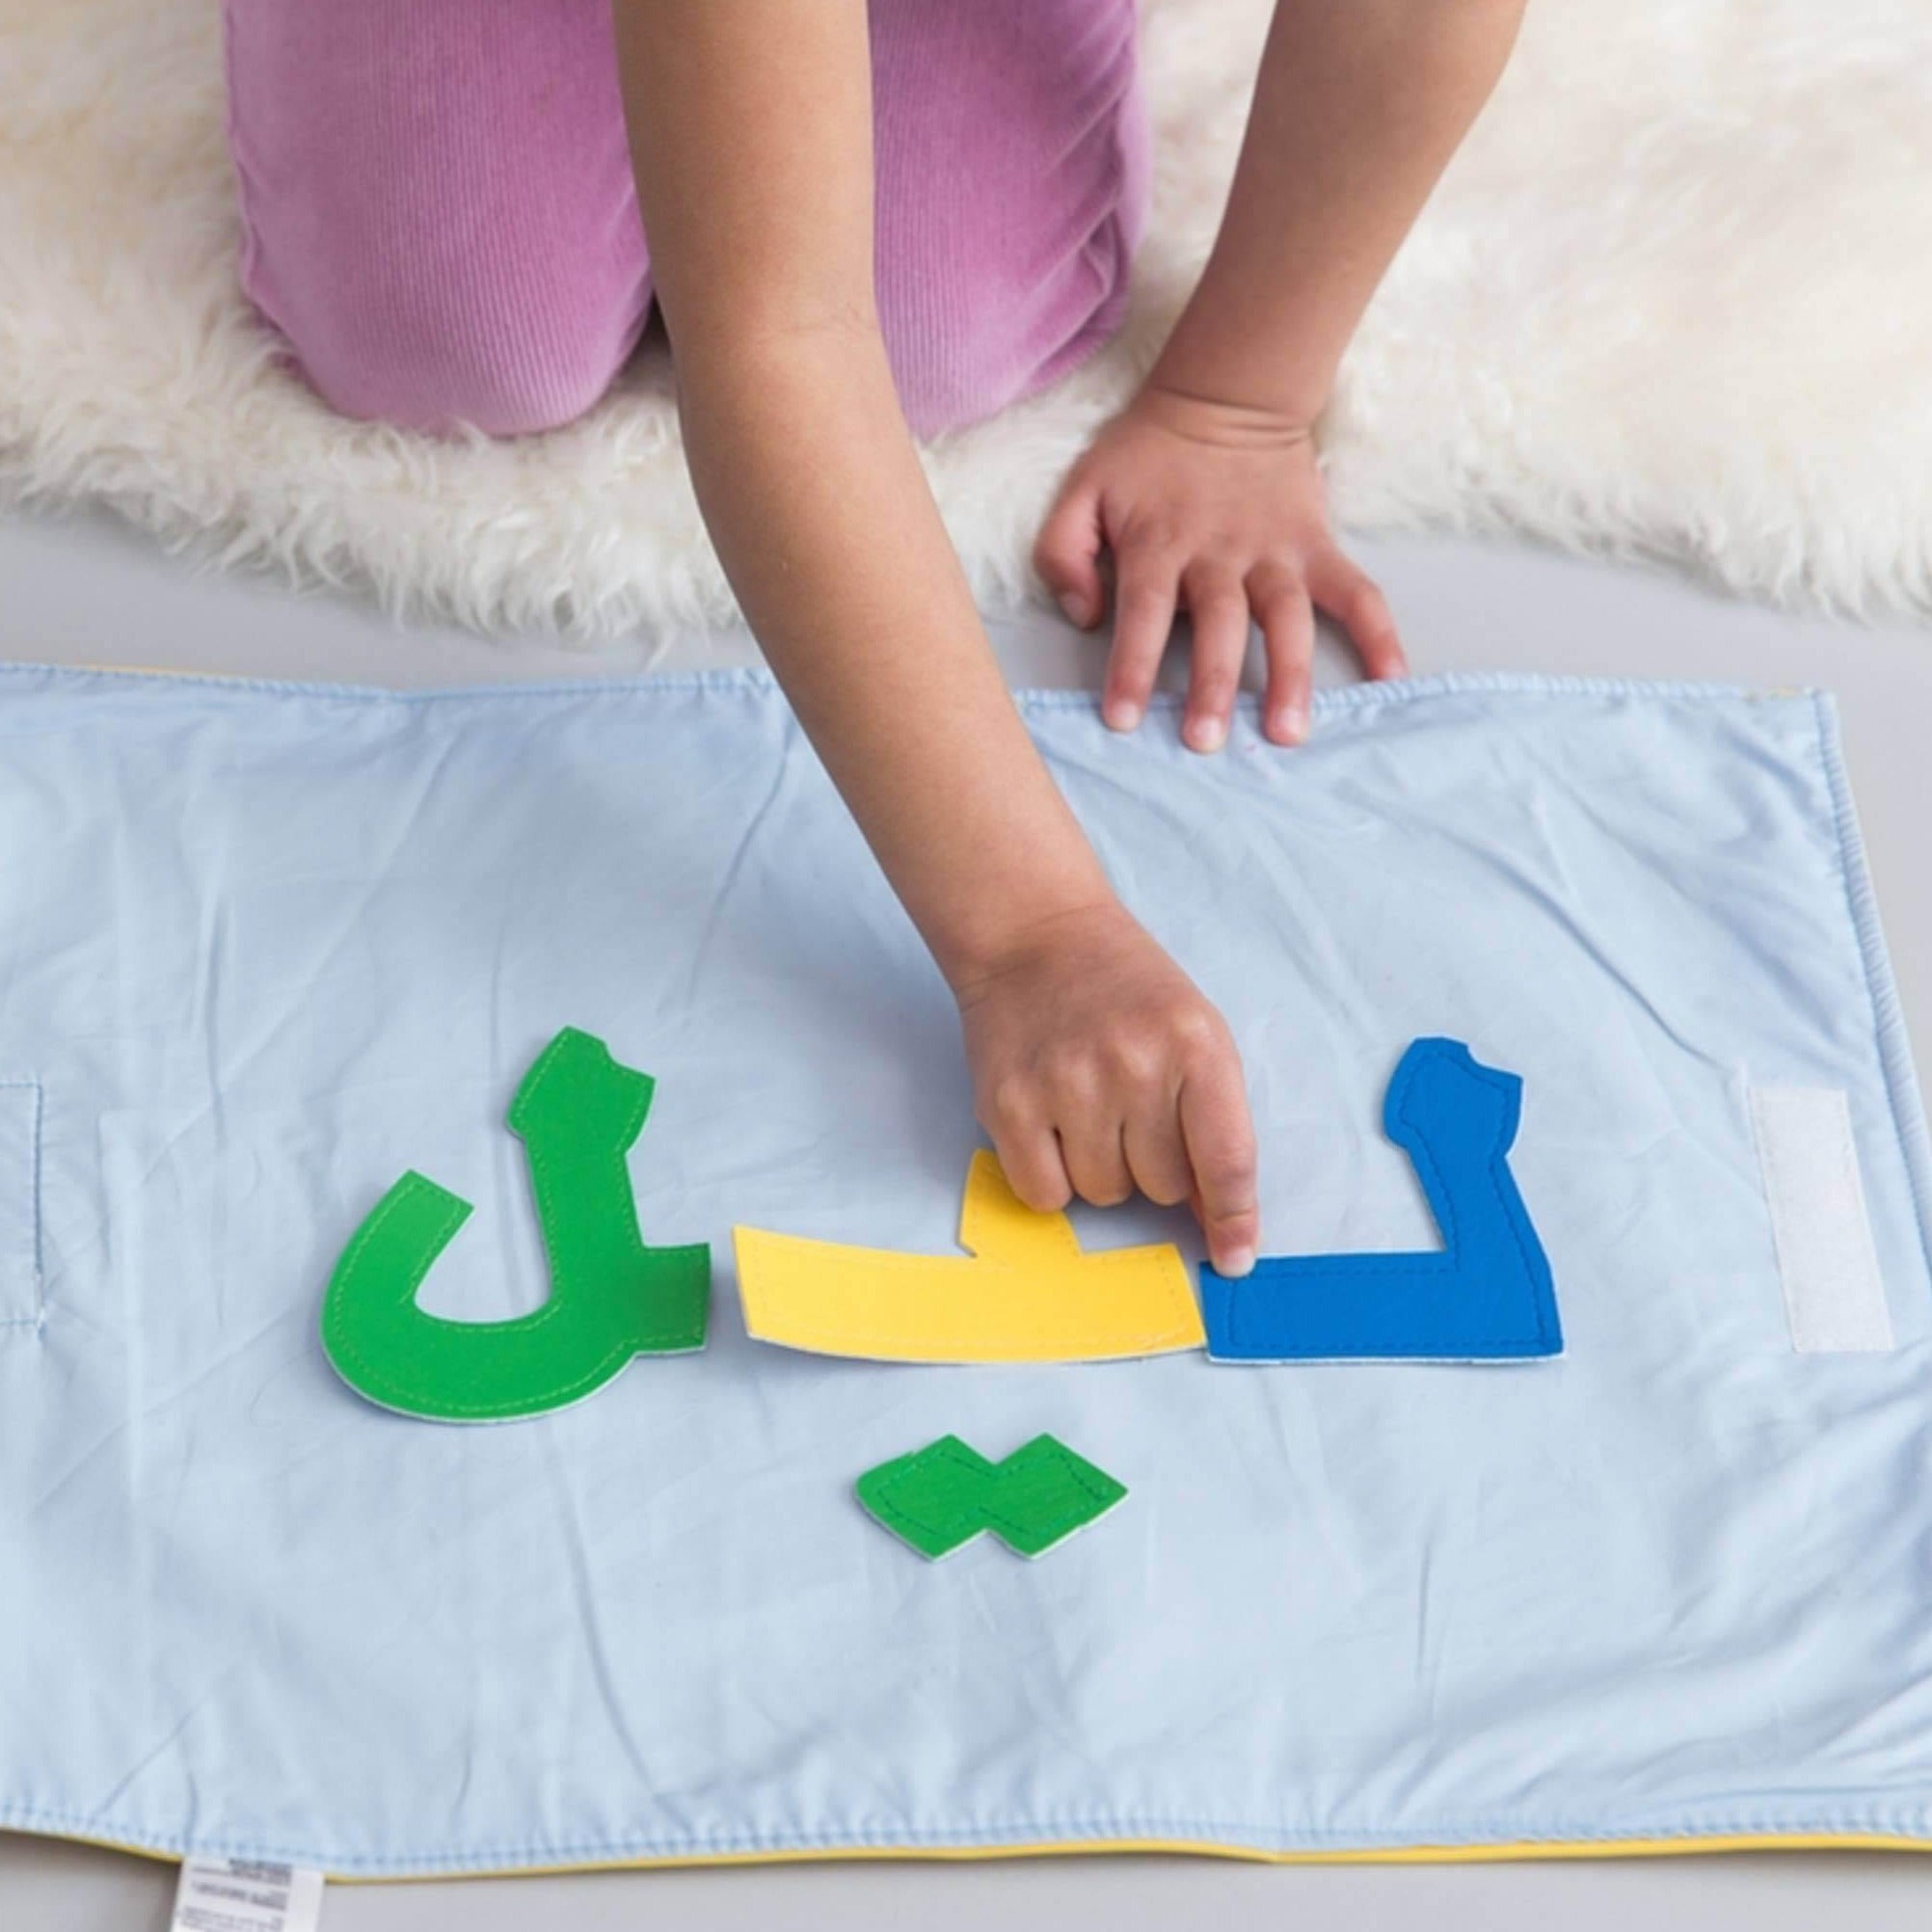 Arabic spelling toy for kids and adults learning Arabic alphabet